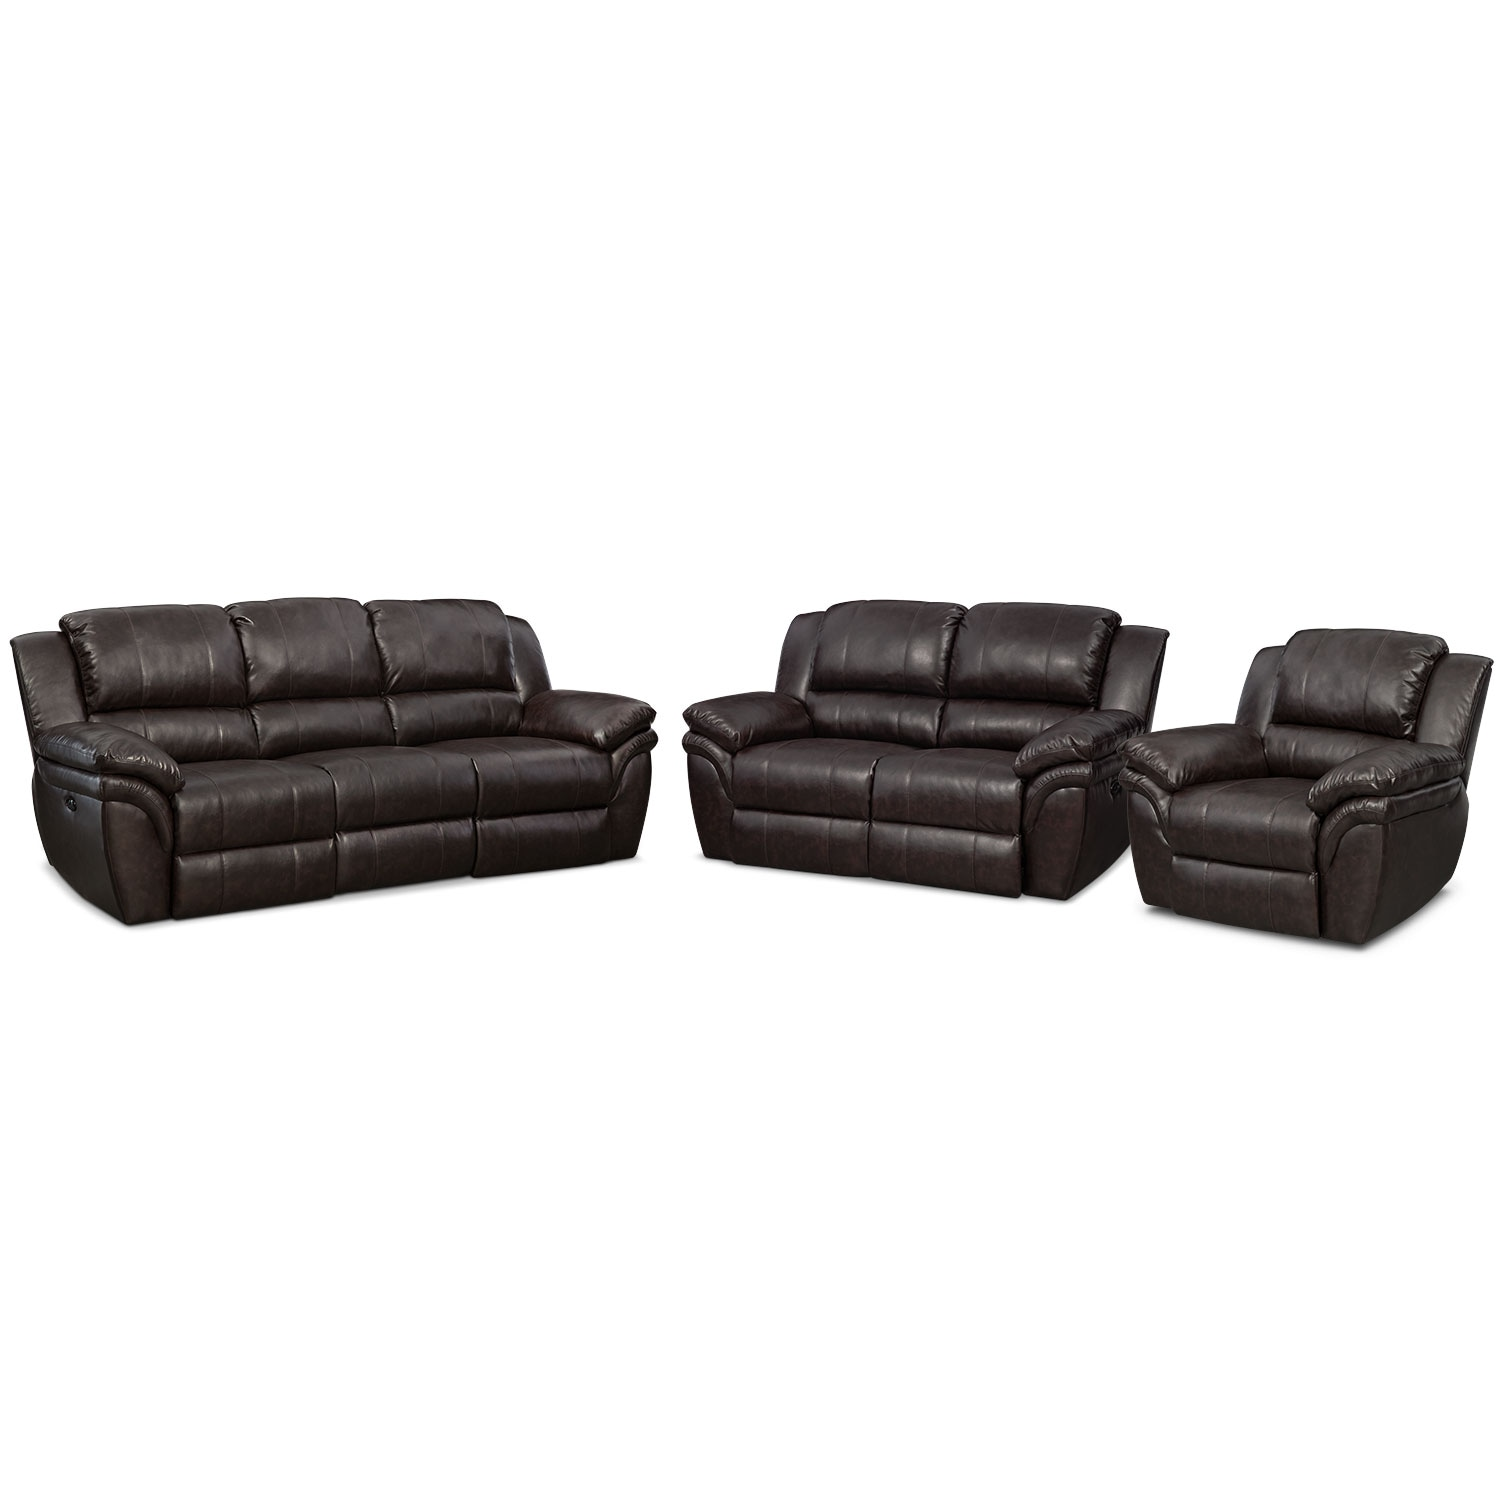 [Omni Brown 3 Pc. Power Reclining Living Room]